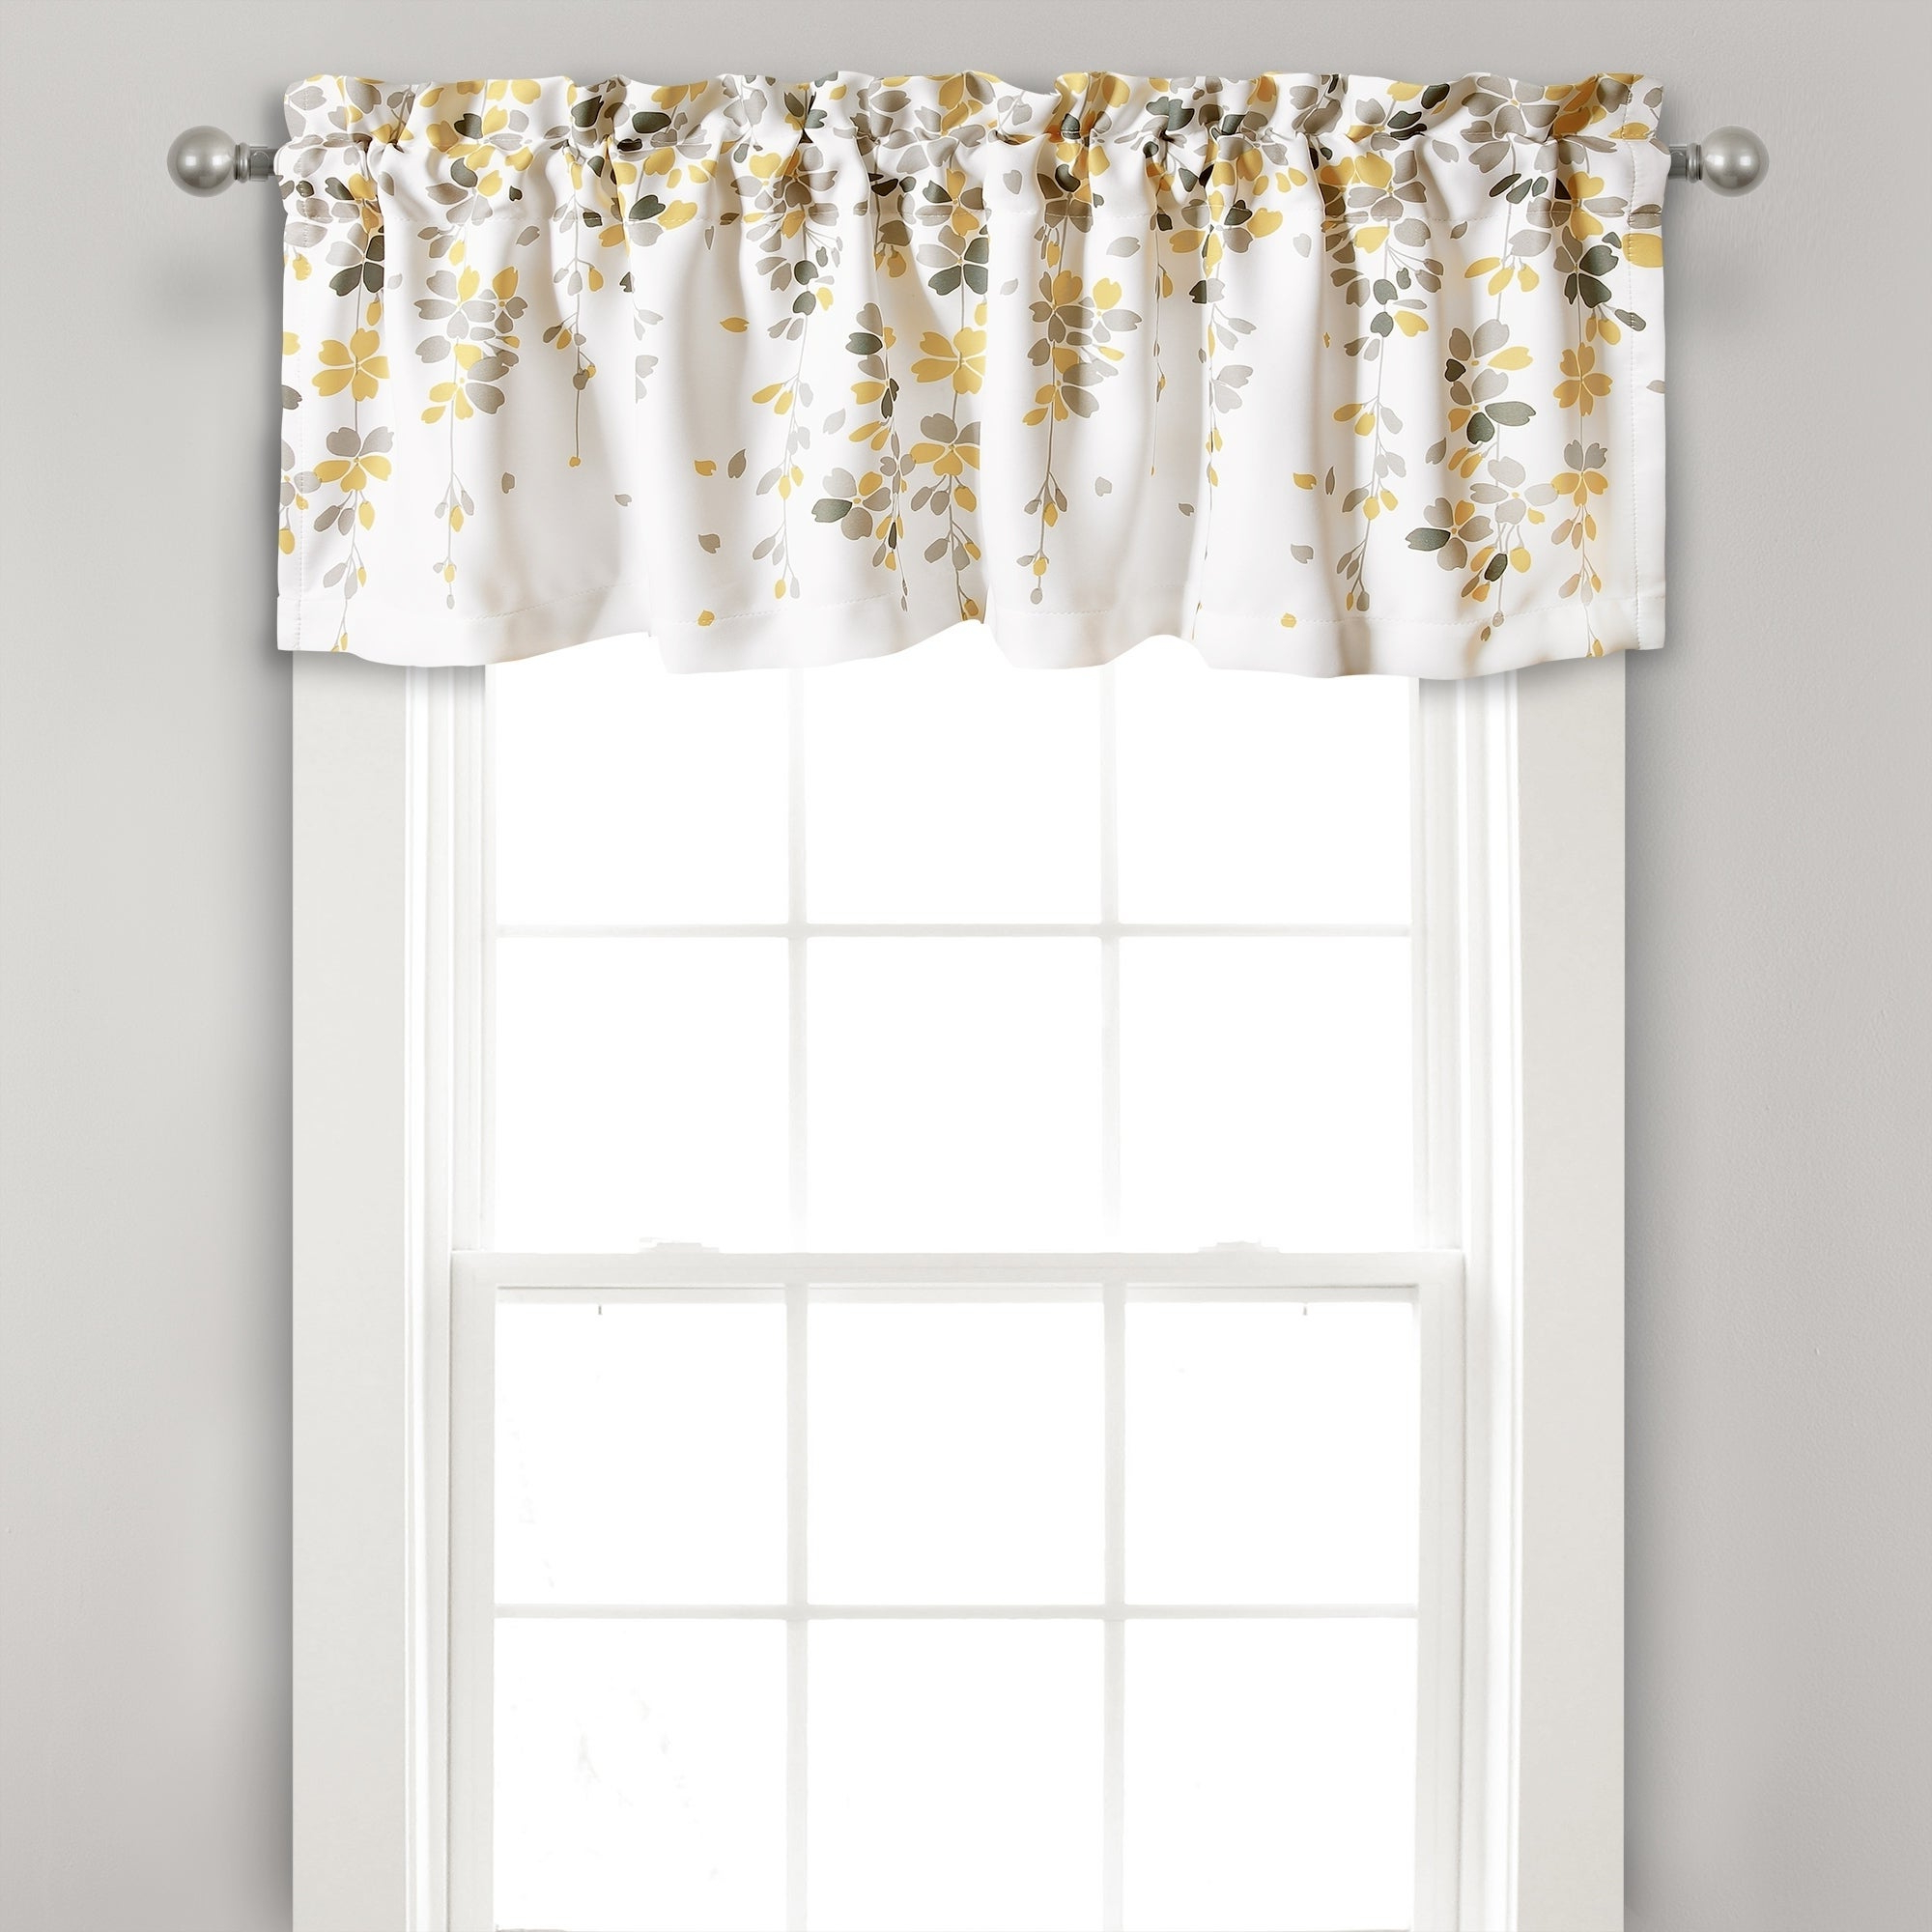 Favorite Traditional Tailored Tier And Swag Window Curtains Sets With Ornate Flower Garden Print With Lush Decor Weeping Flower Room Darkening Window Curtain Valance – 52x (View 17 of 20)